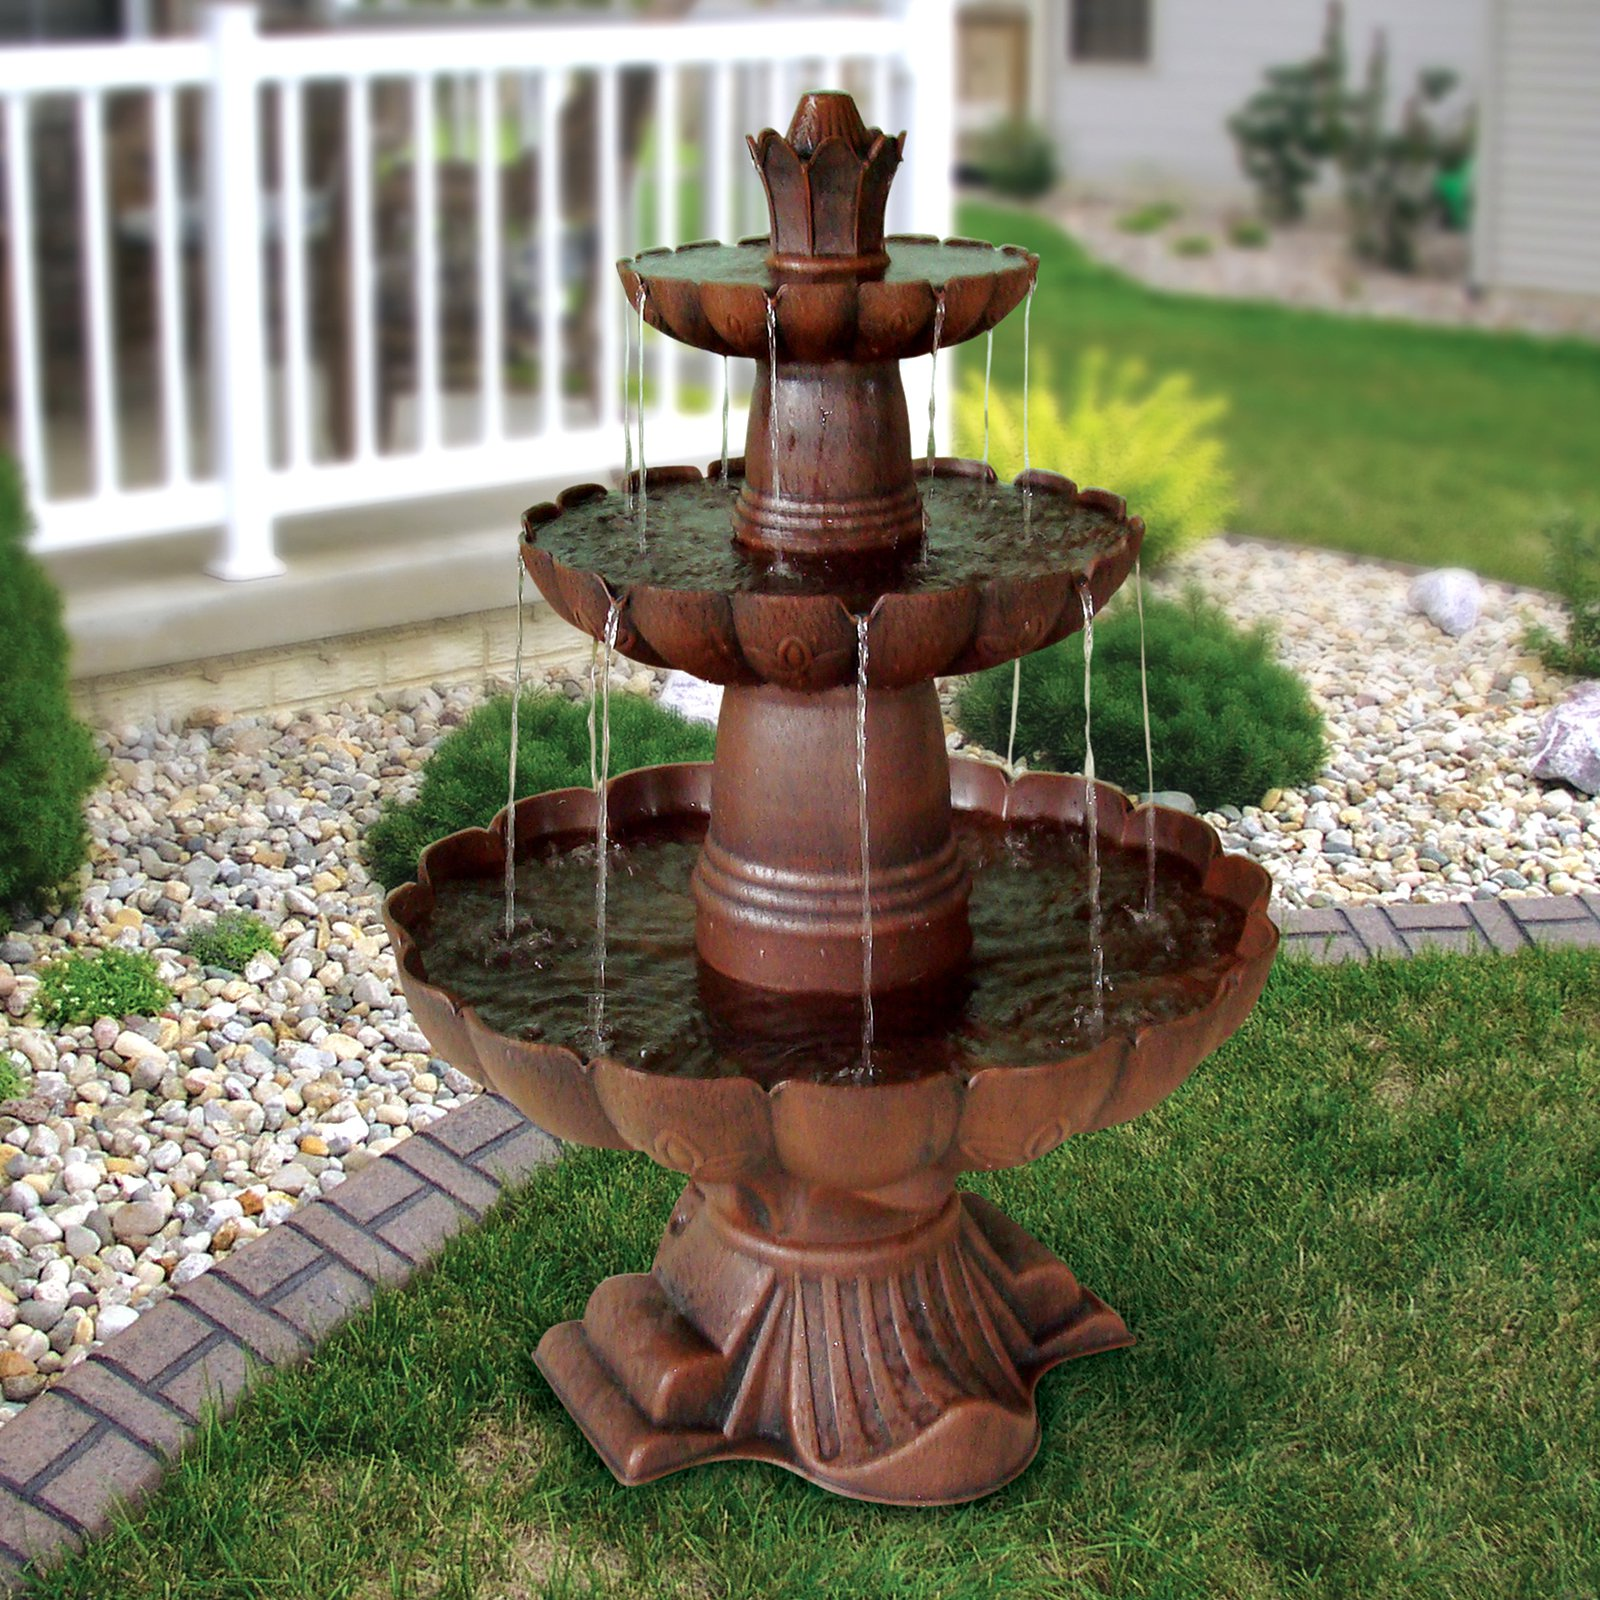 Alpine Valencia 3-Tiered Outdoor Fountain by Alpine Corp